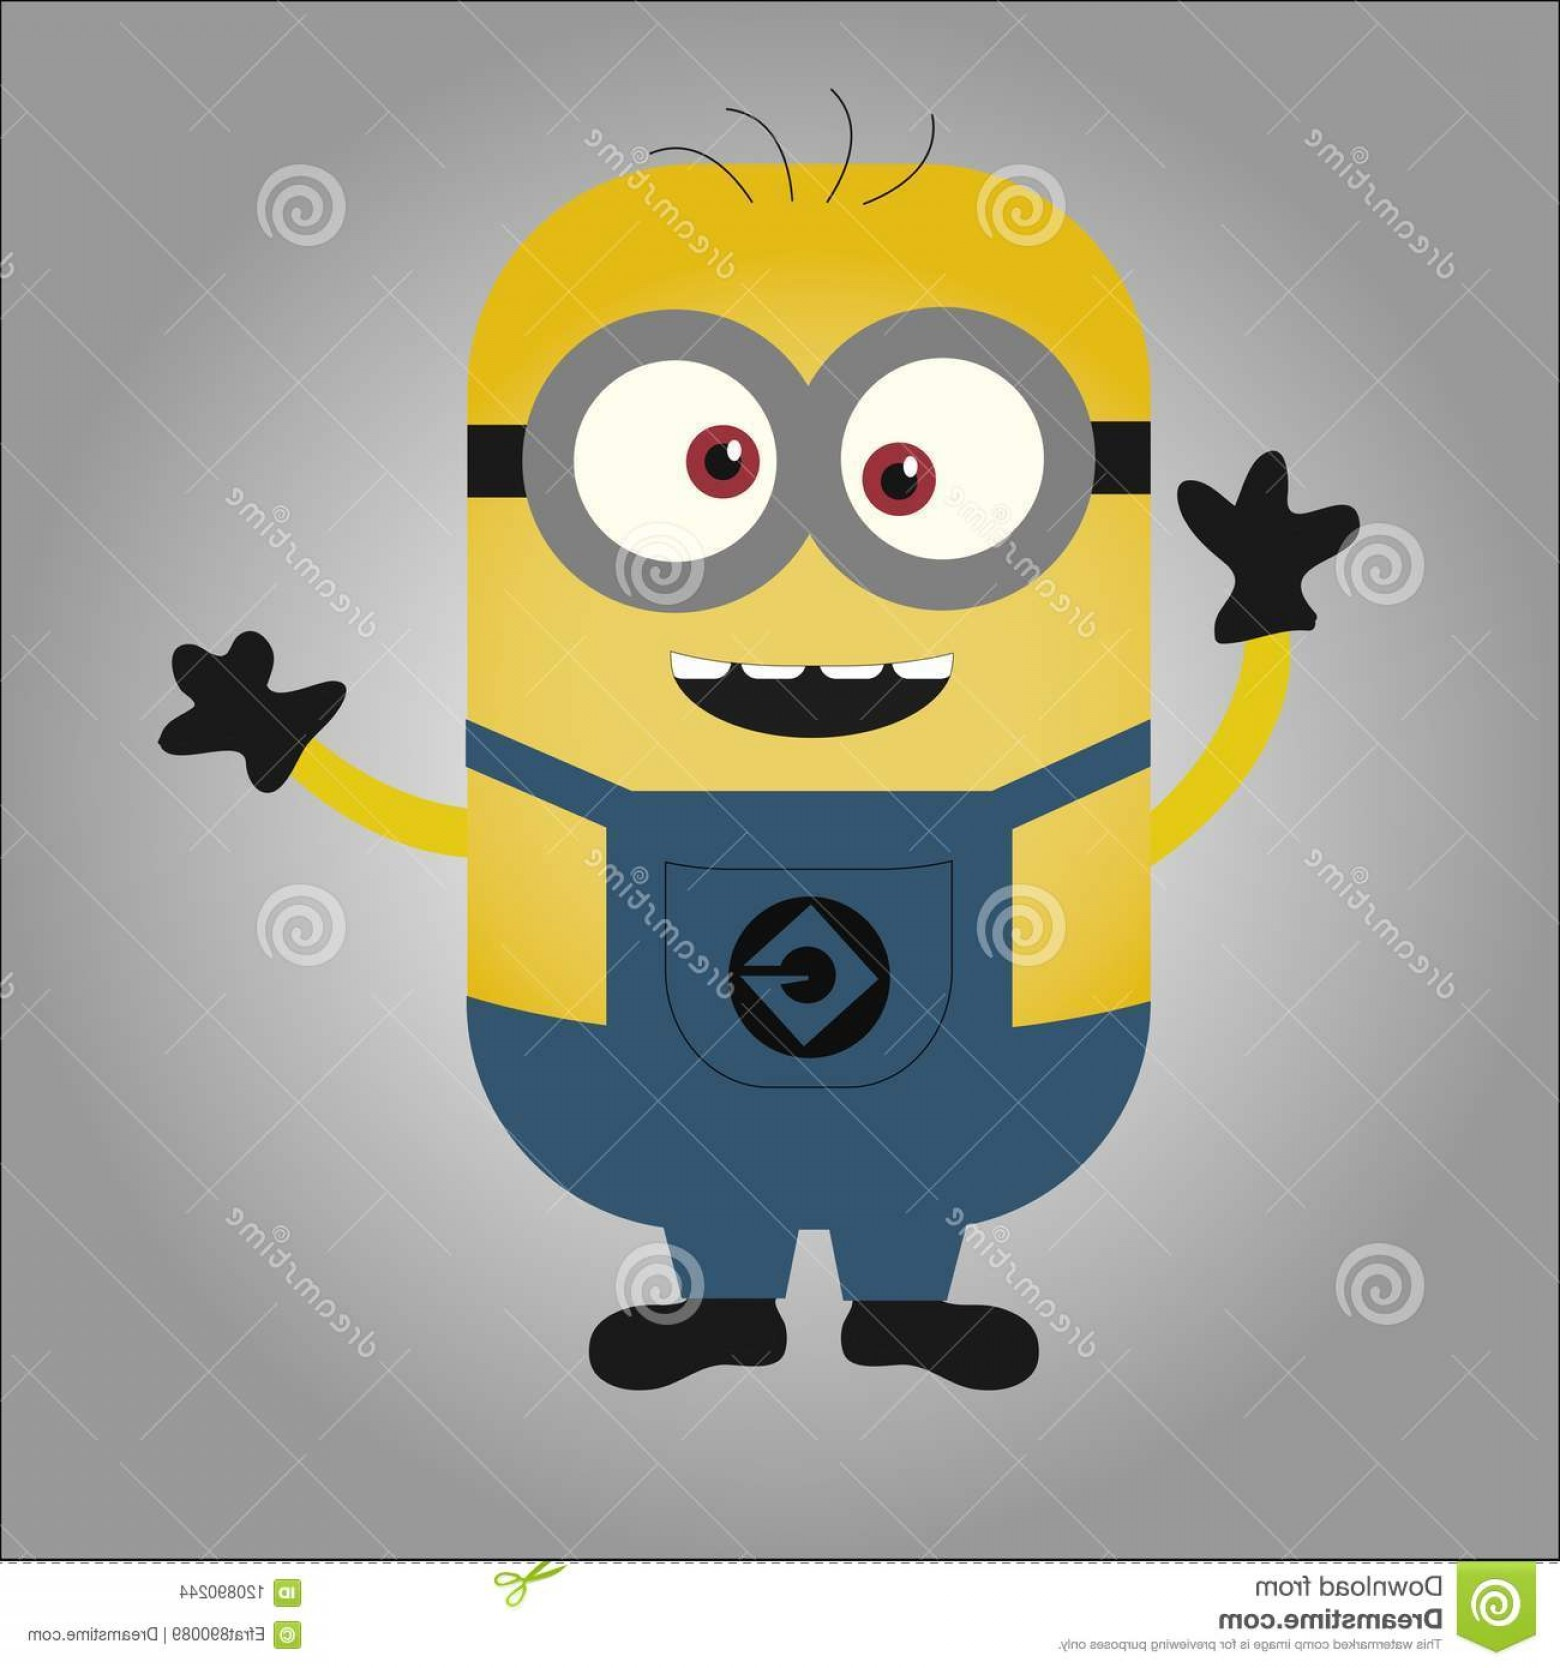 Animated Despicable Me Vector: Happy Cross Eyed Minion Waving Hands Black Gloves Despicable Me Cartoon Vector Art Yellow Image